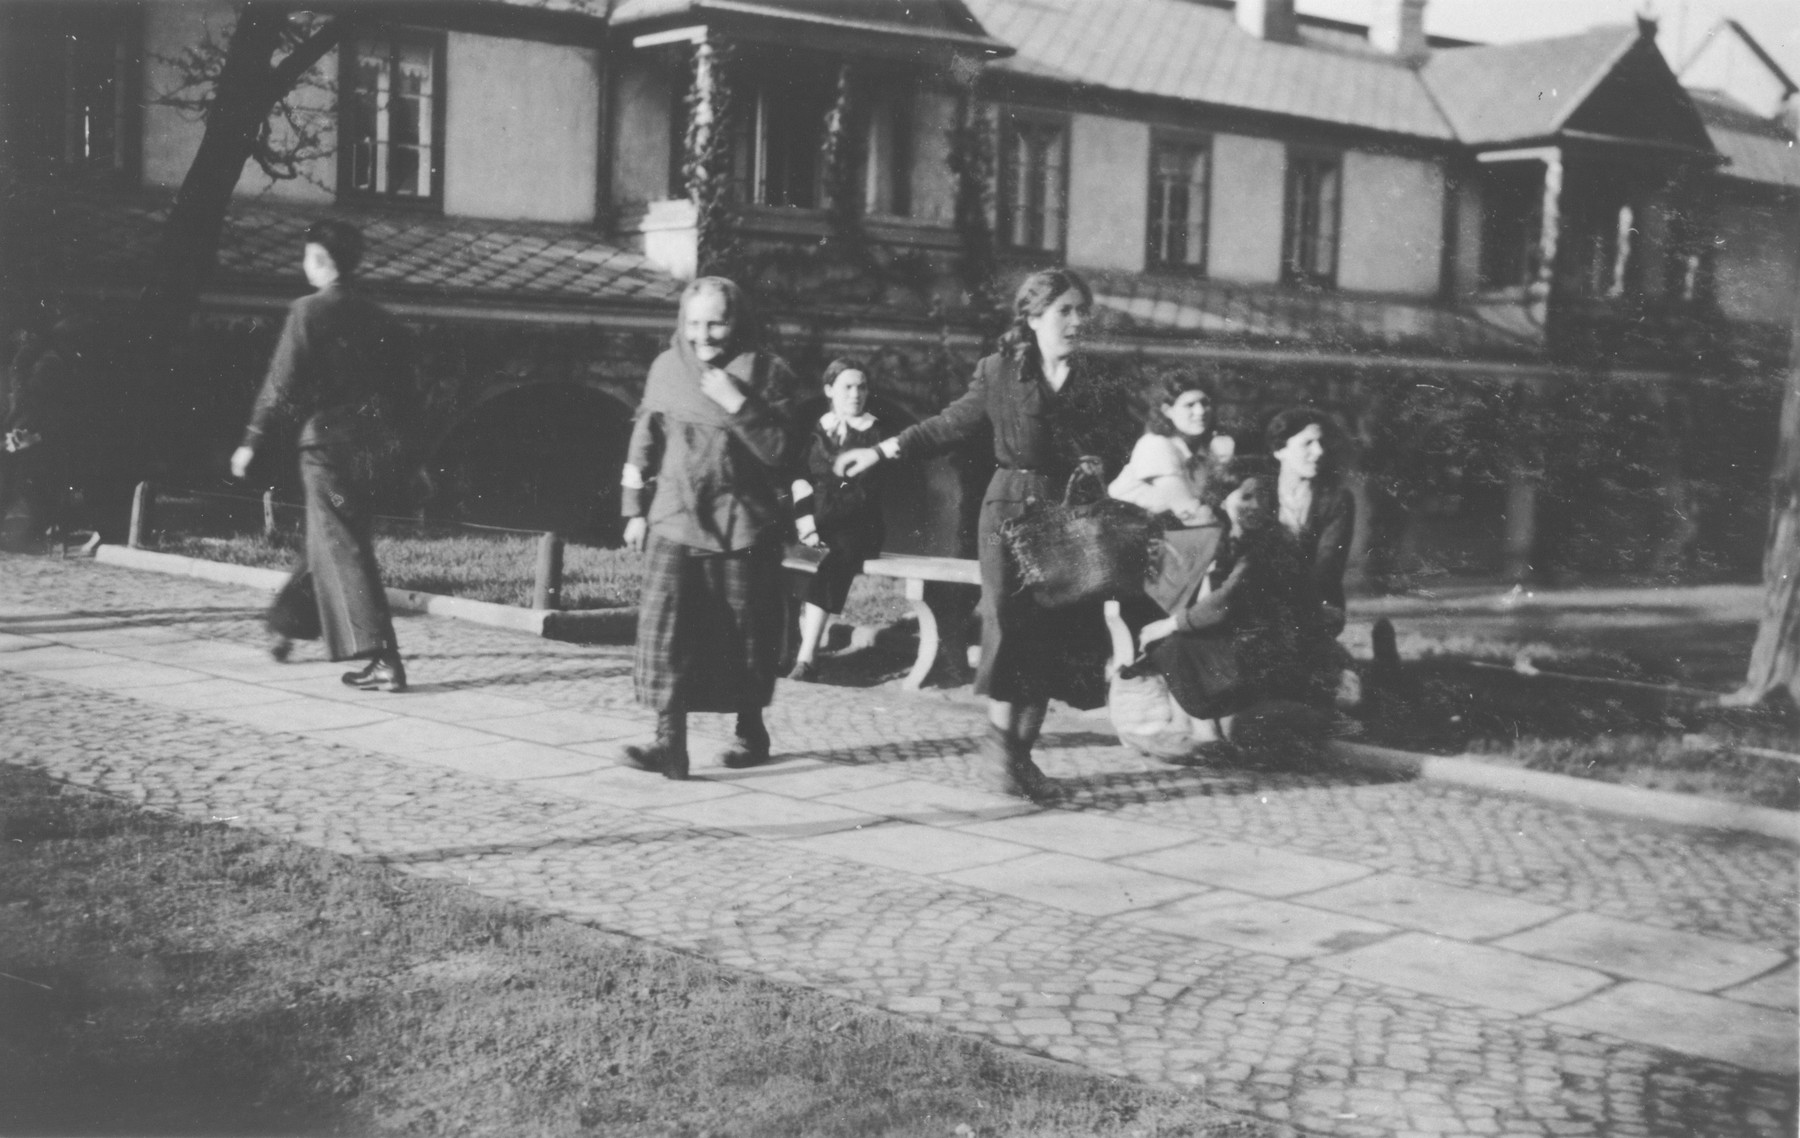 Men and women walk down a street and sit on benches in an unidentified ghetto.